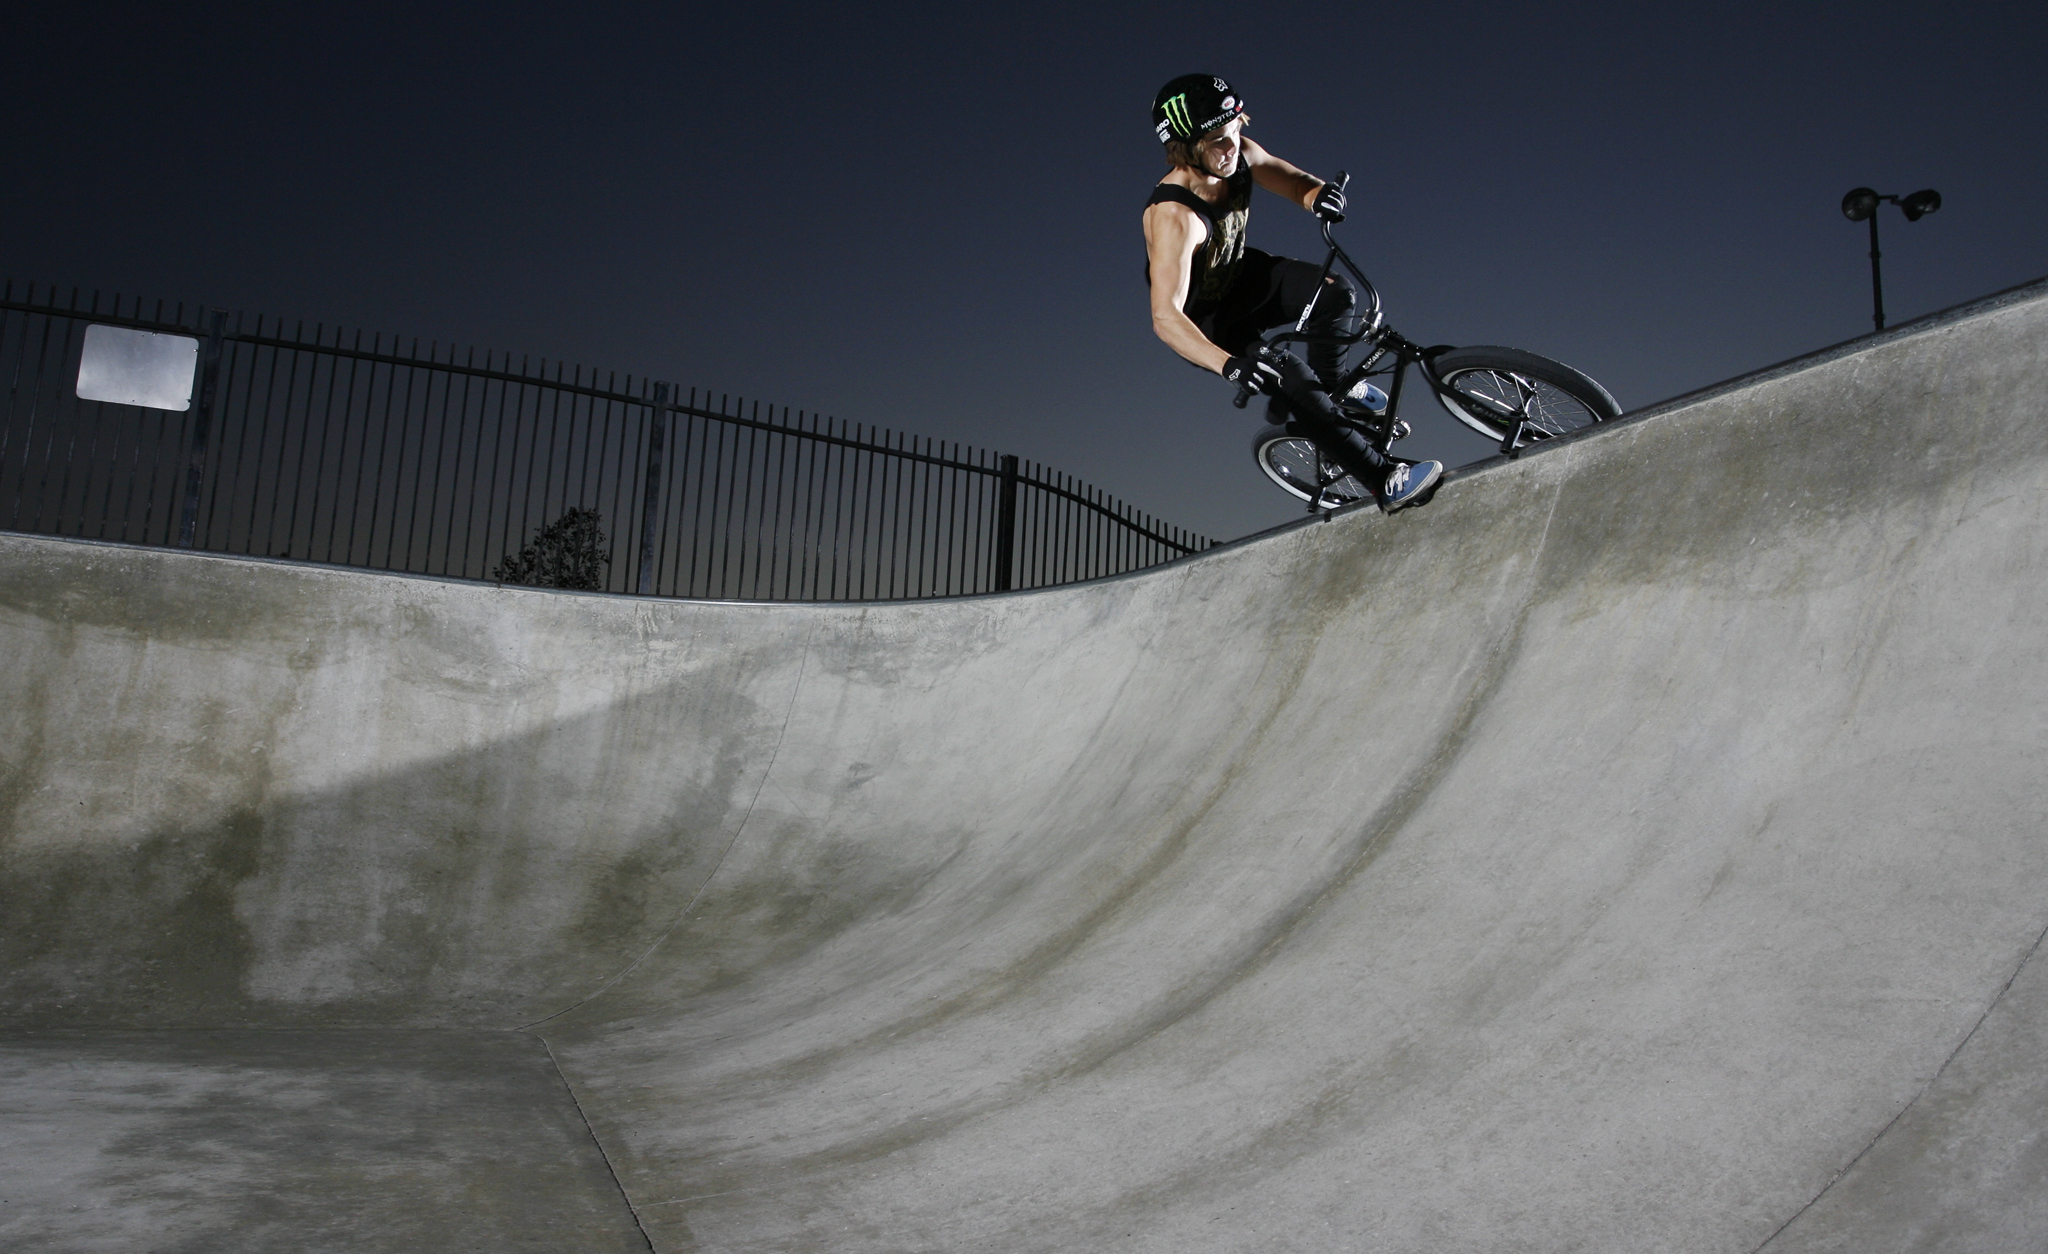 /photo/2012/1231/as_bmx_casey8_2048.jpg